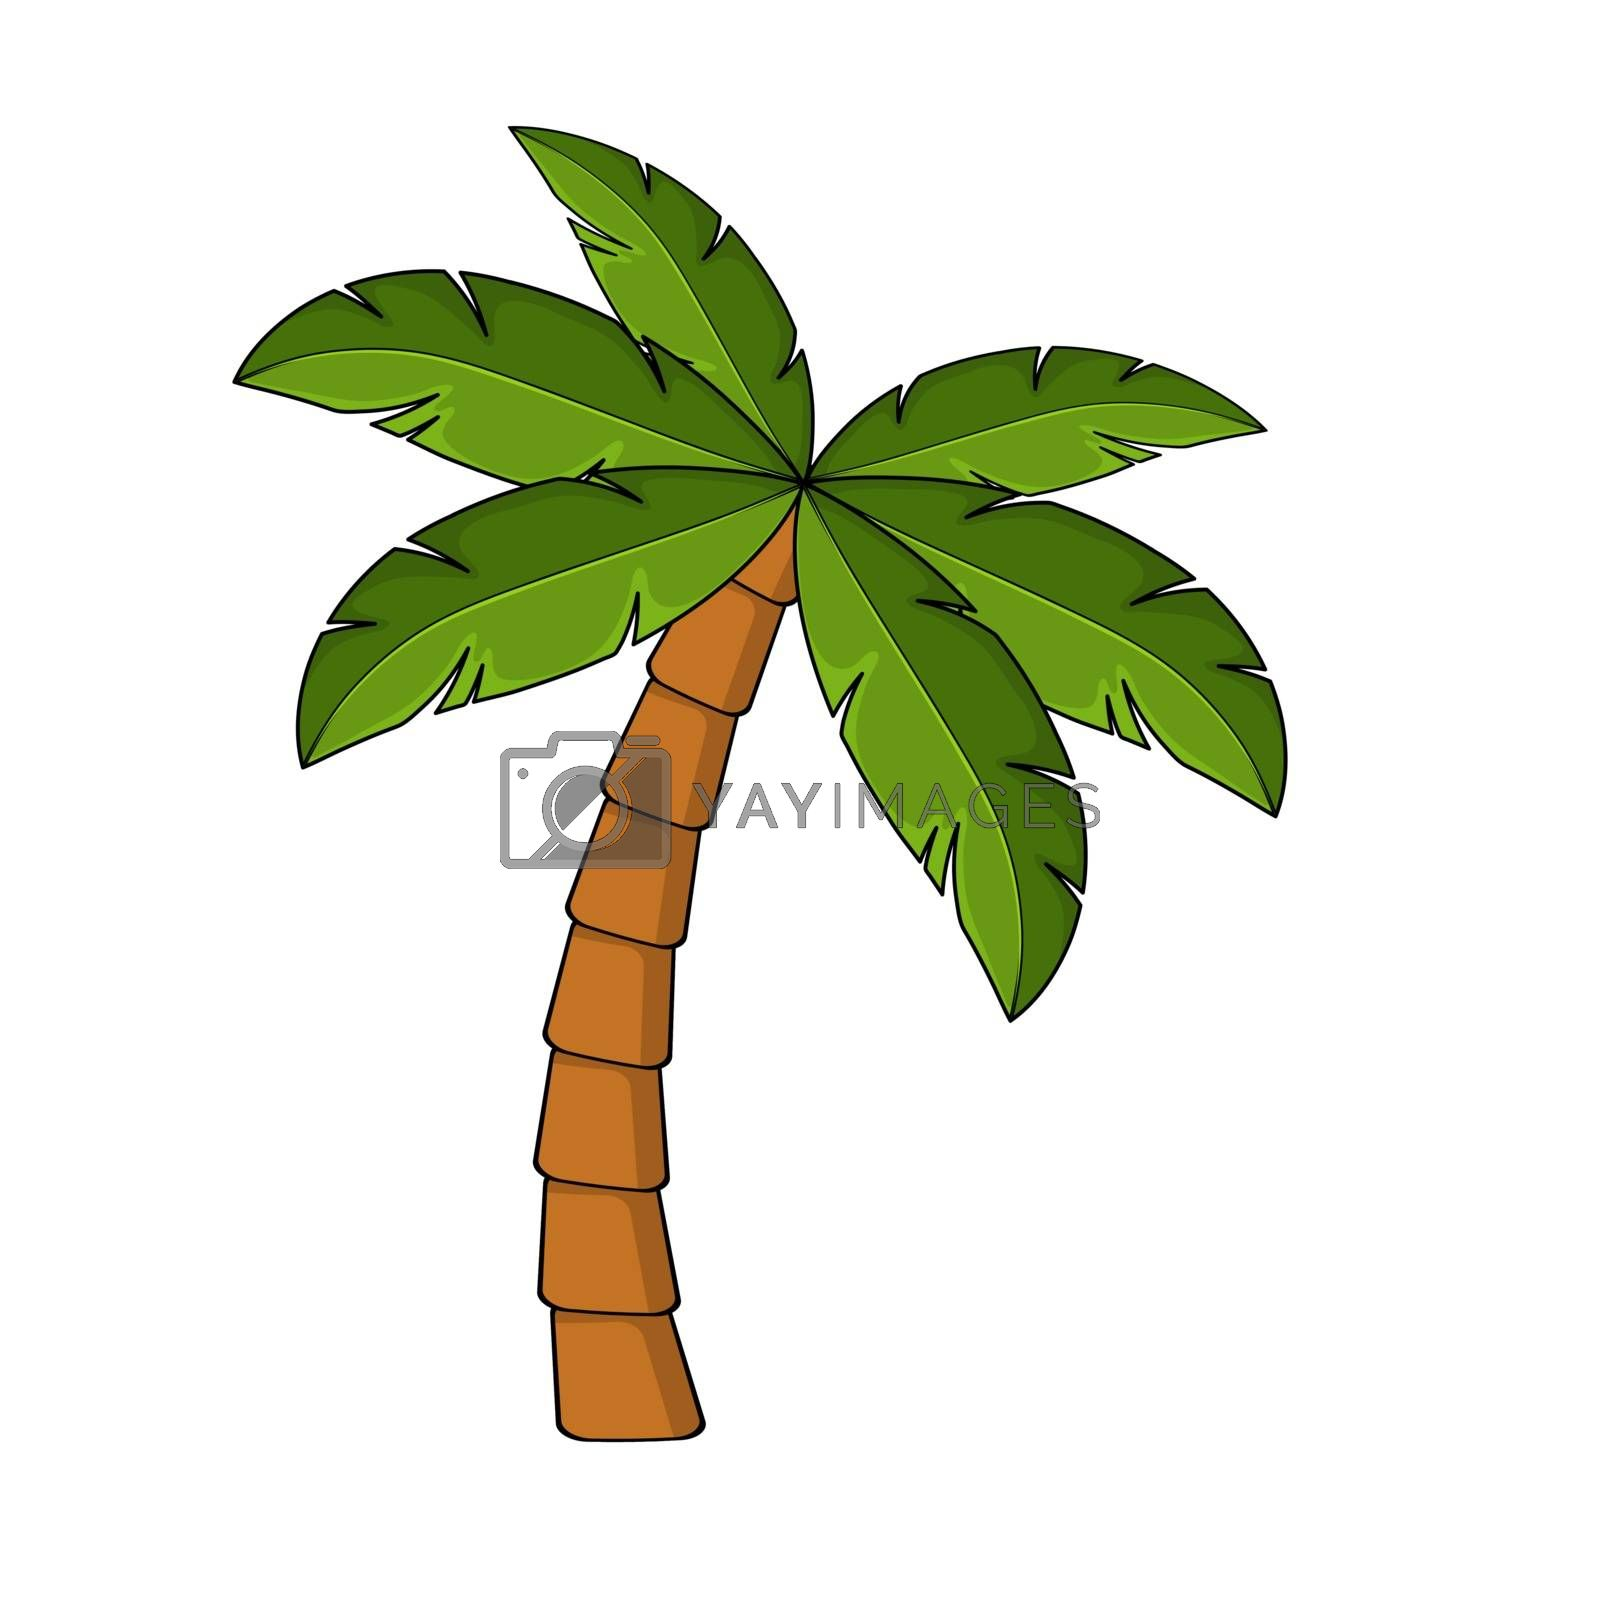 Palm tree cartoon isolated on white. Single palm clipart. Template for poster or postcard. Graphic element for tropical, exotic illustration. One high coco palmtree for summertime drawing.